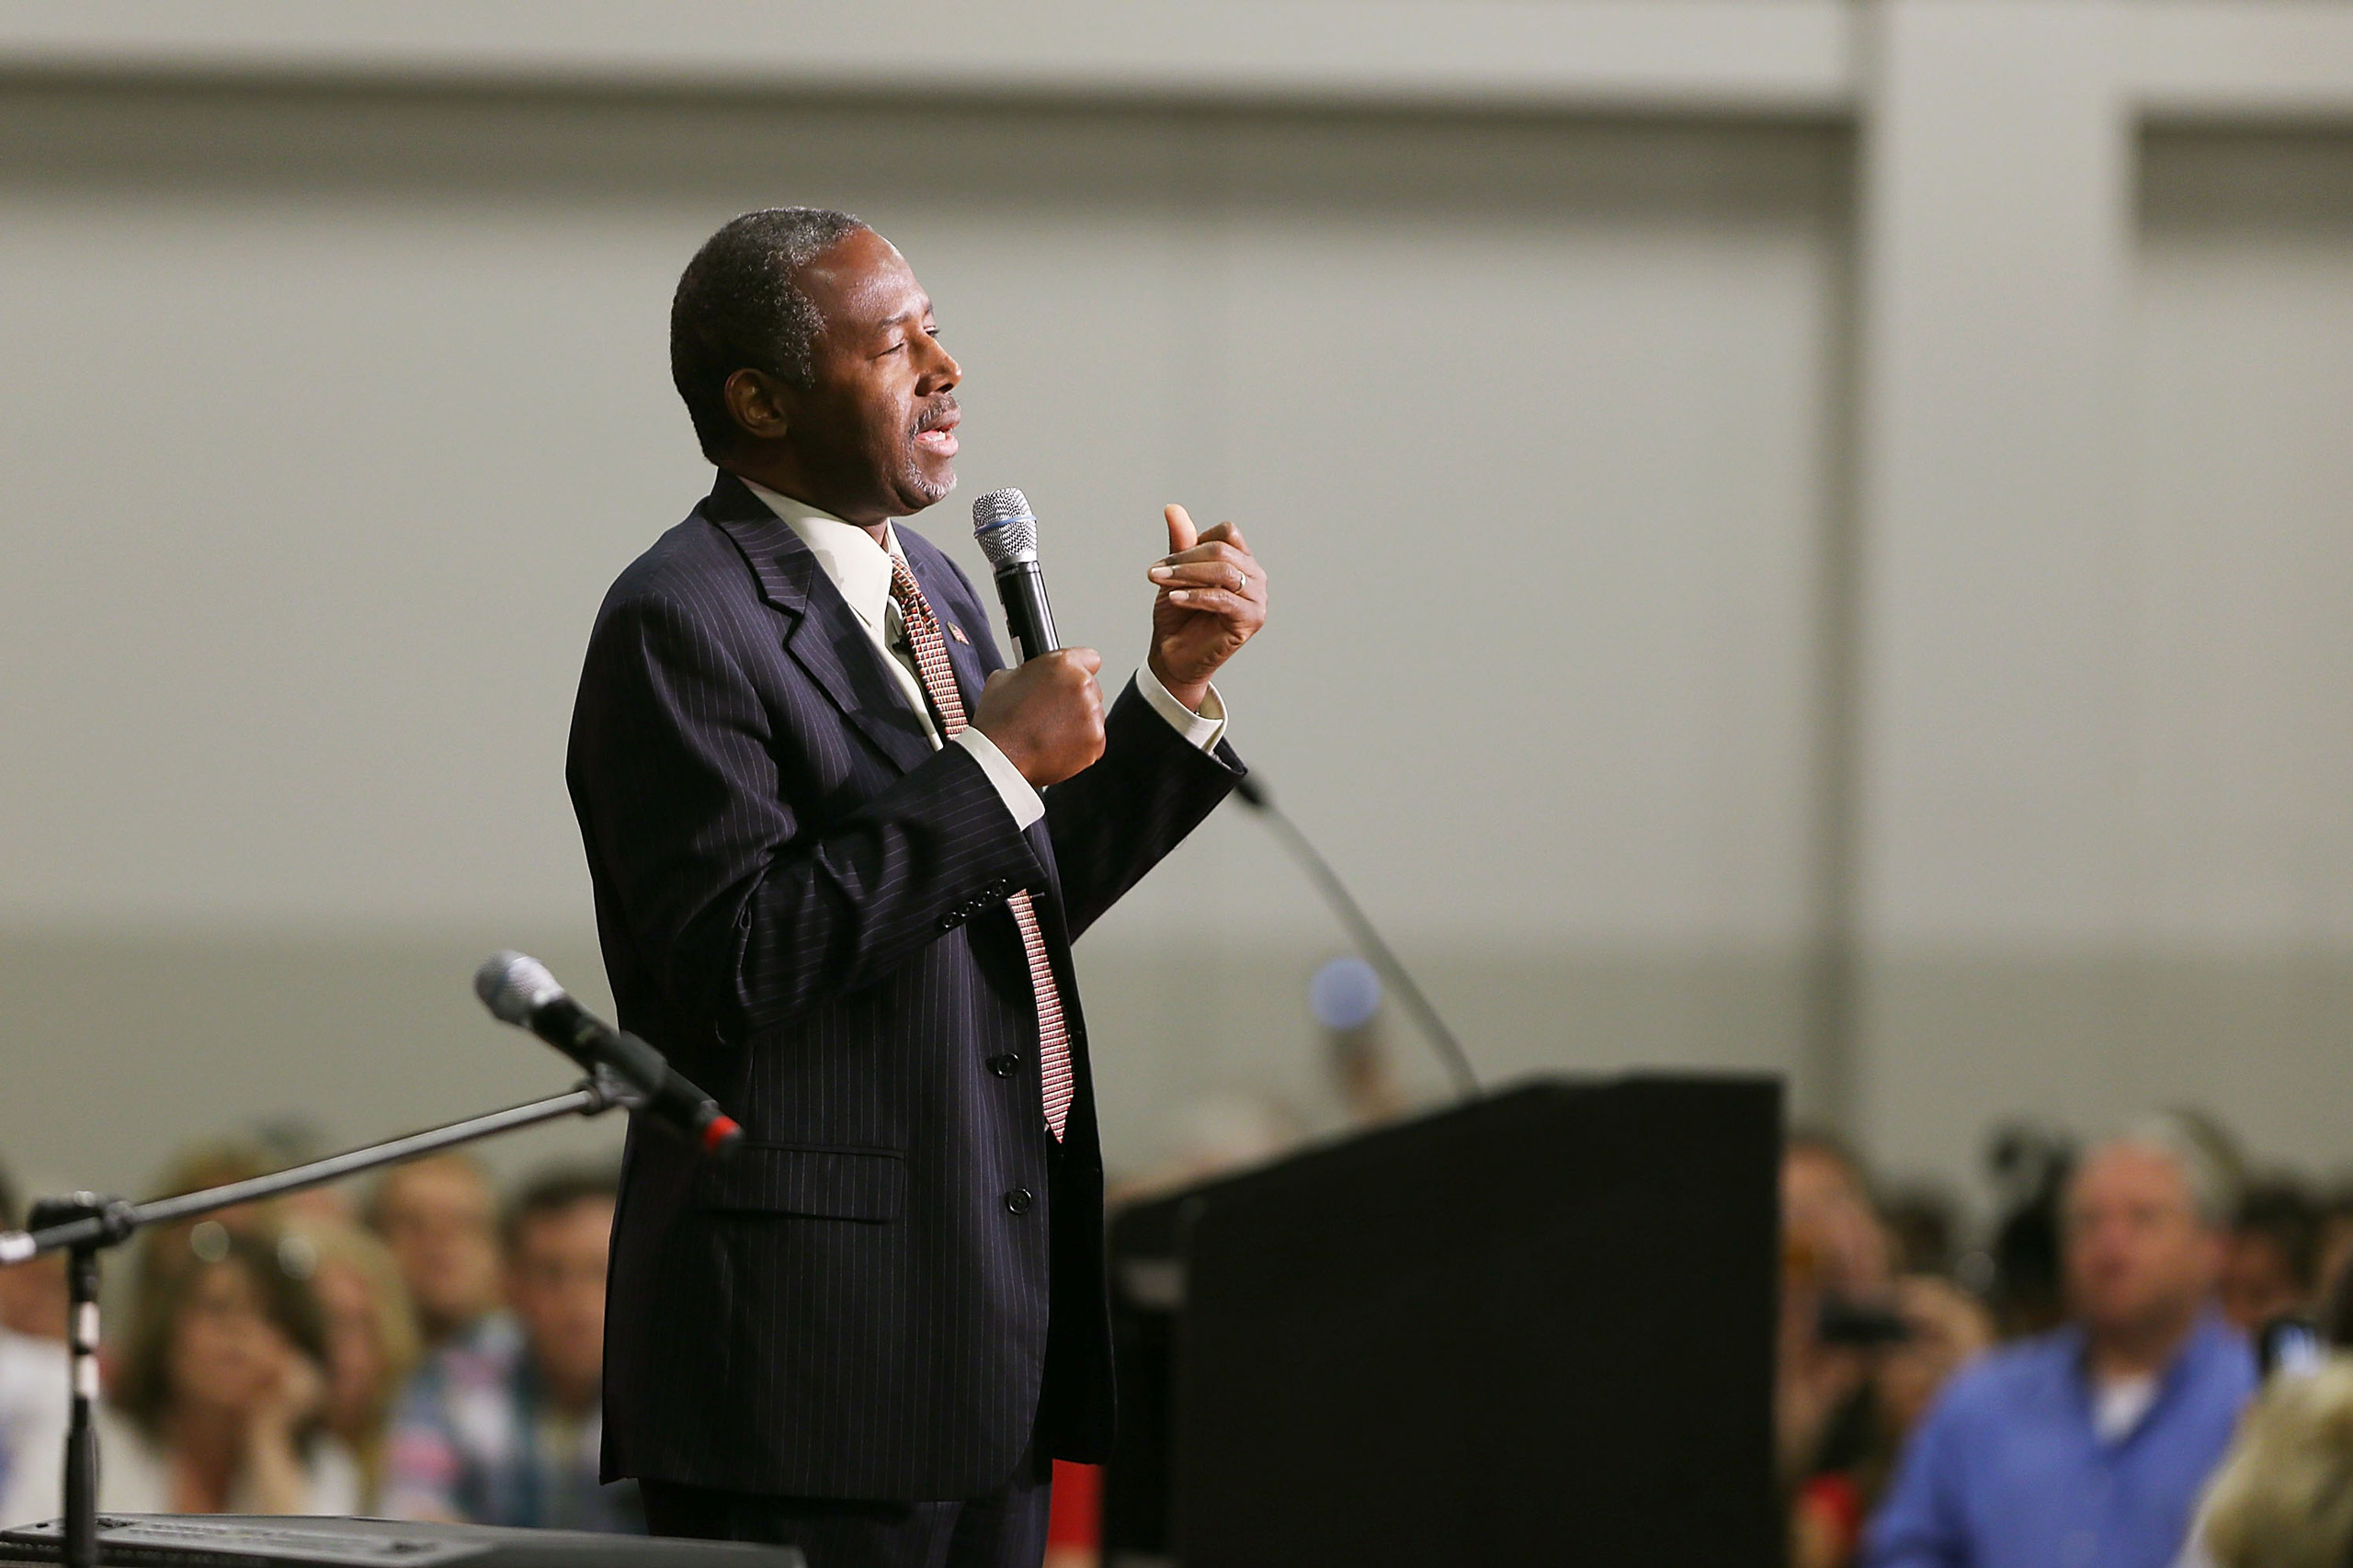 Republican presidential candidate Dr. Ben Carson speaks at a campaign rally  in Sharonville, Ohio, on Sept. 22, 2015.